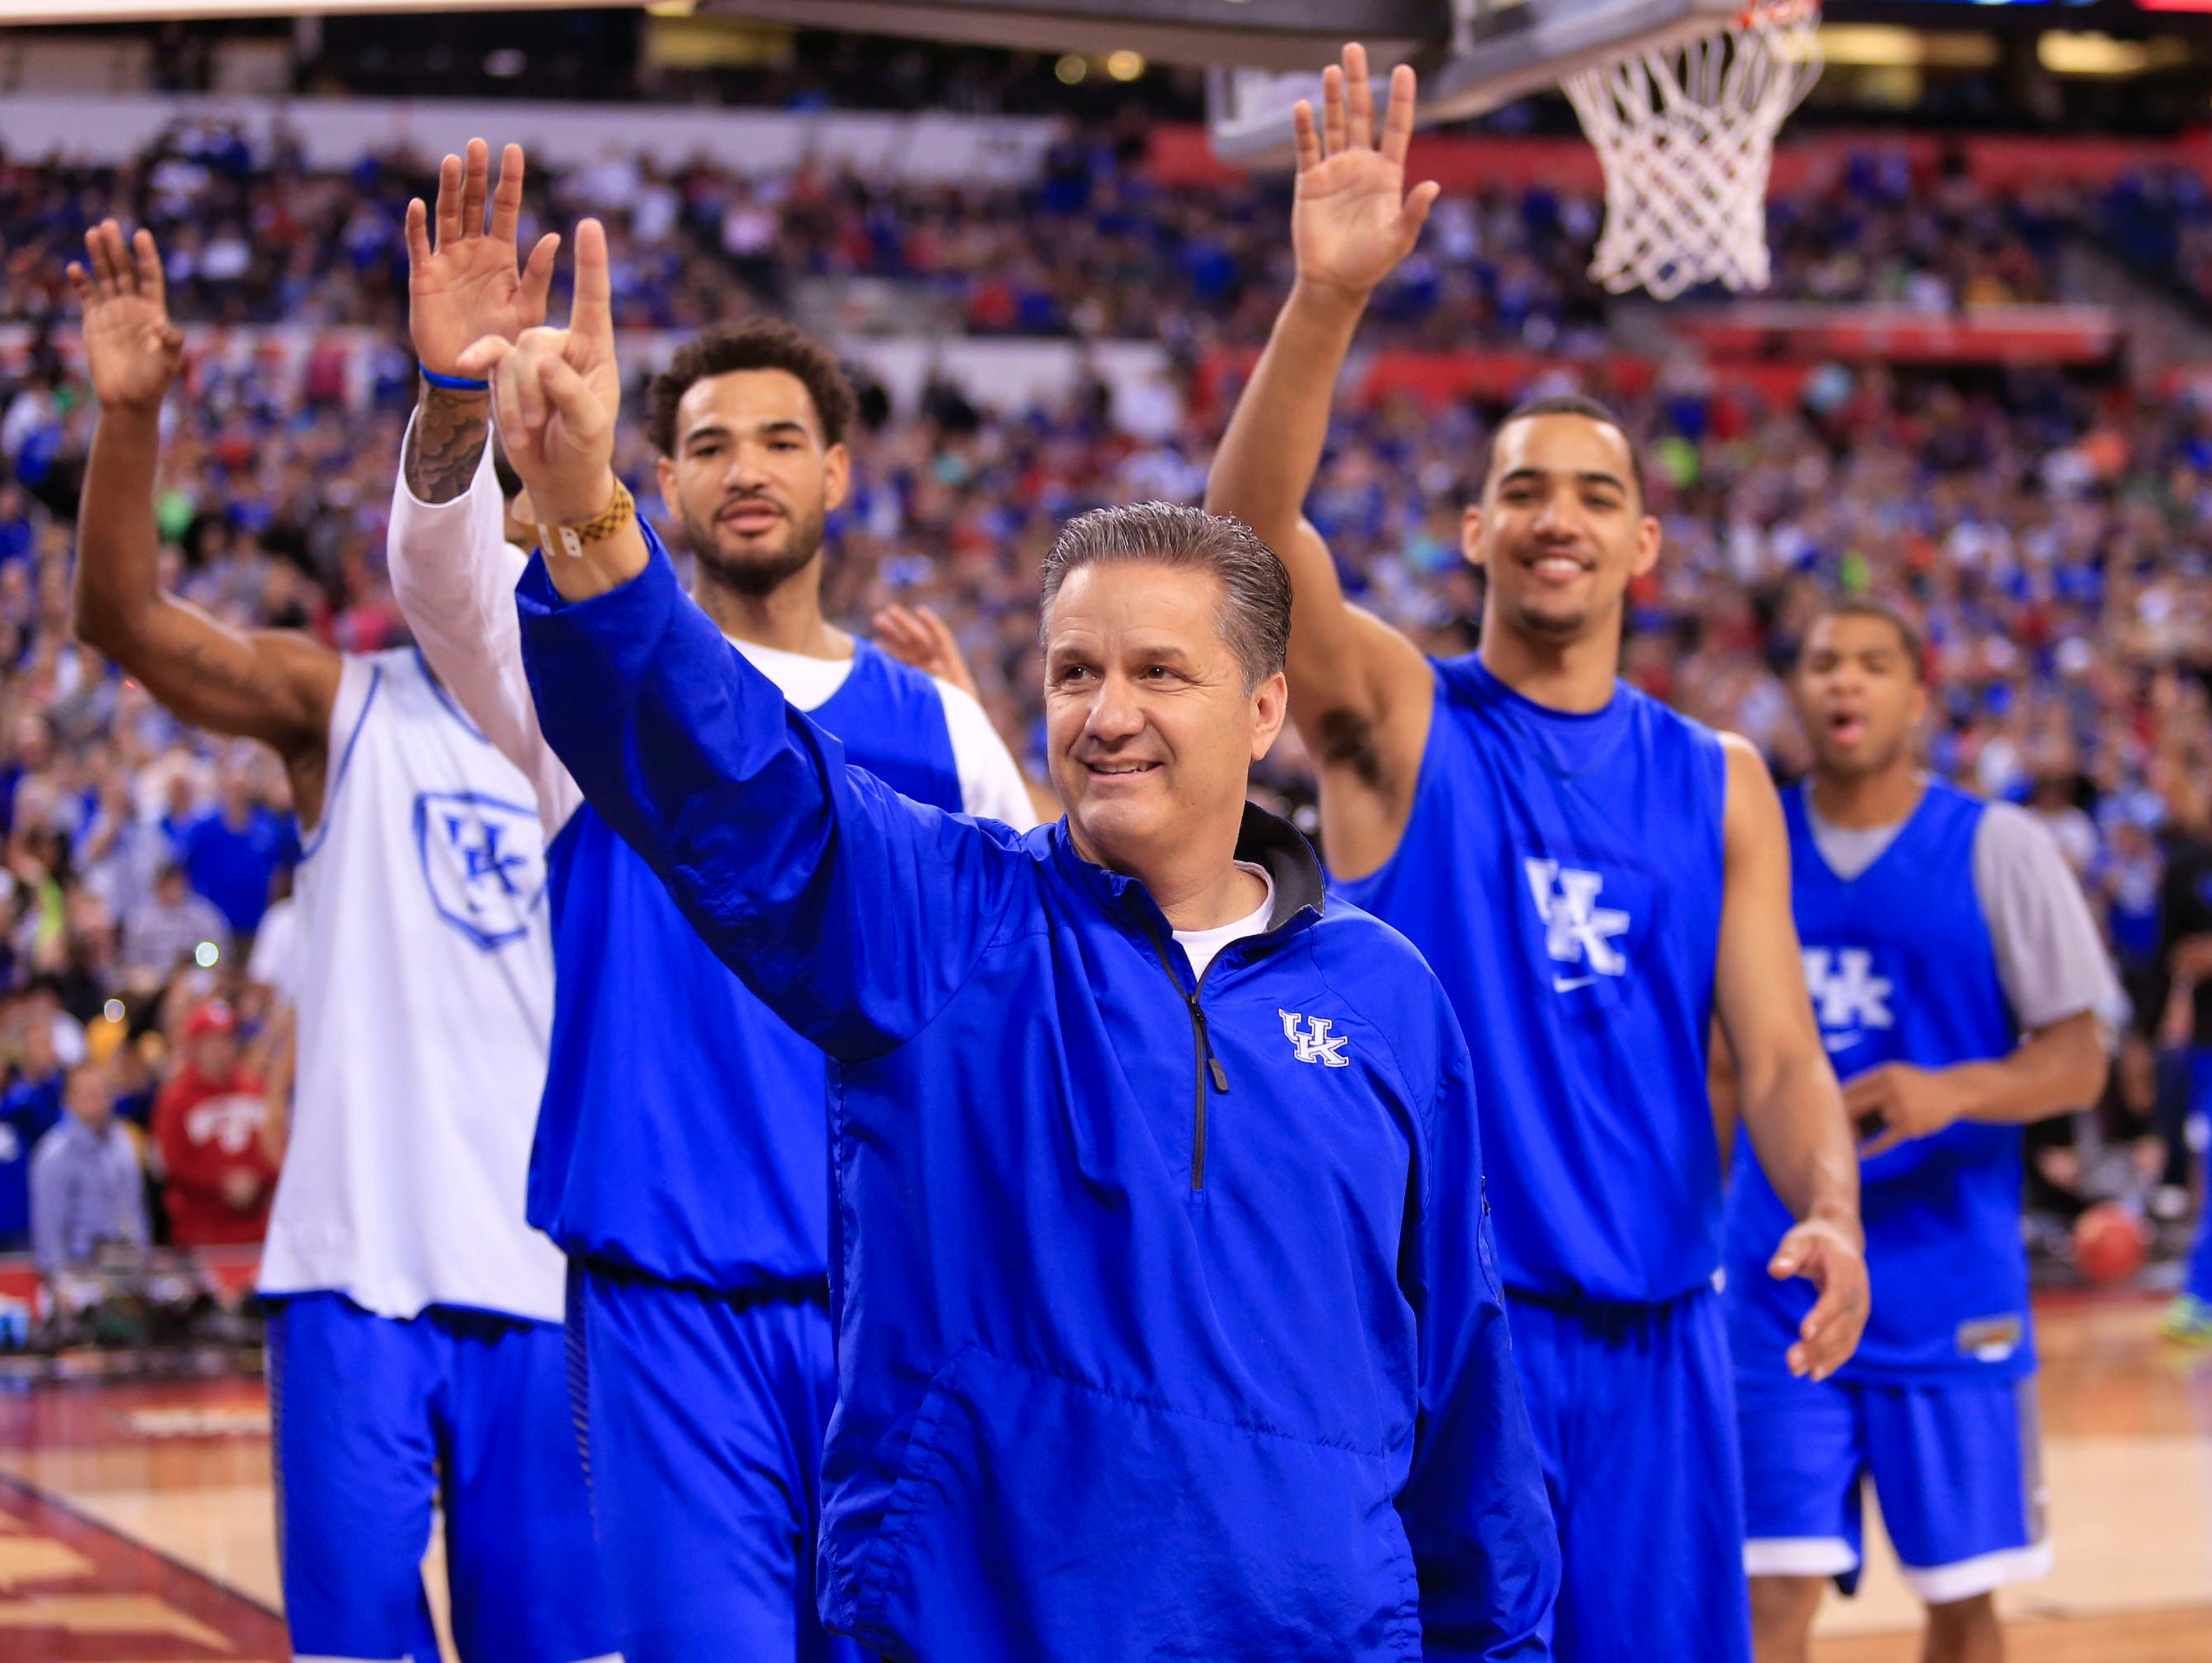 Kentucky head coach John Calipari and players wave to fans at the end of practice Friday afternoon at Lucas Oil Stadium. By Matt Stone, The C-J April 3, 2015.